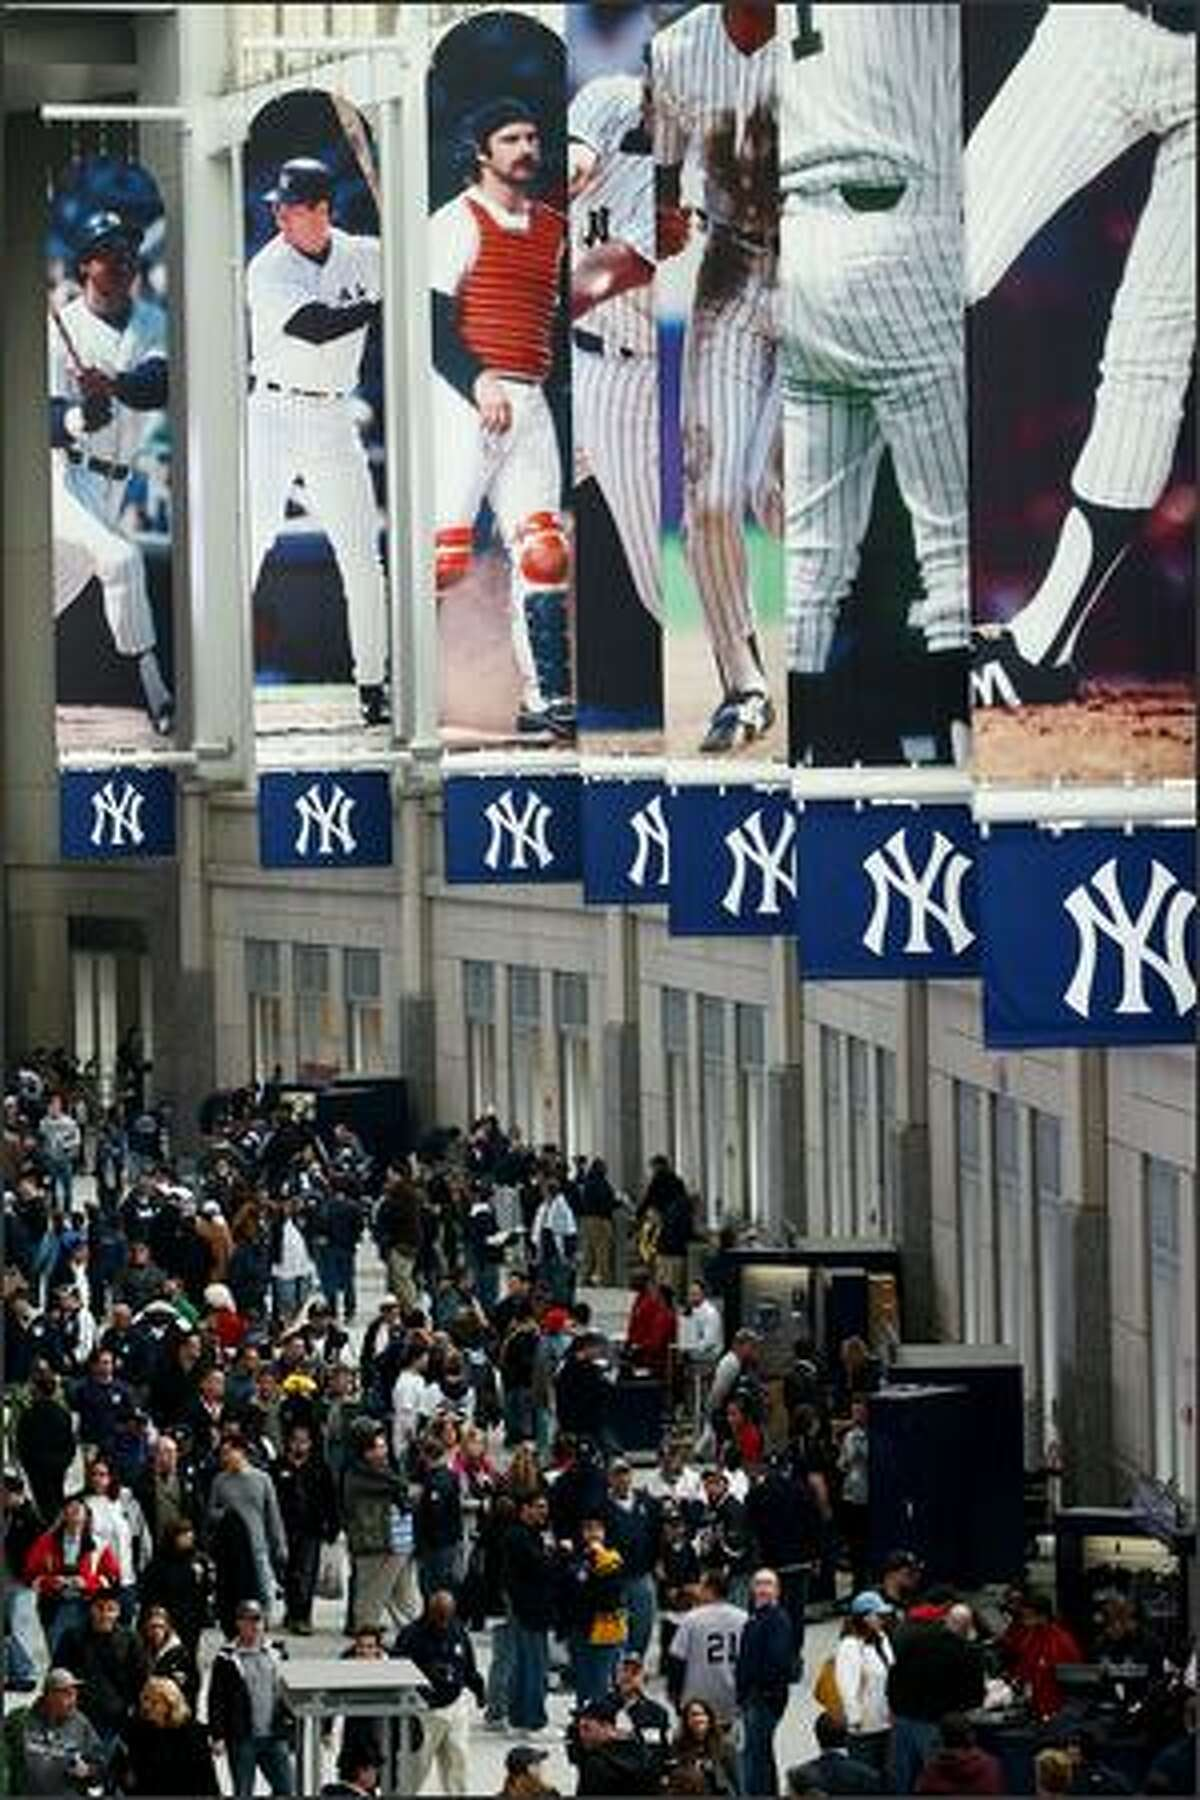 Fans enjoy the new Yankee Stadium concourse area prior to the start of the game.